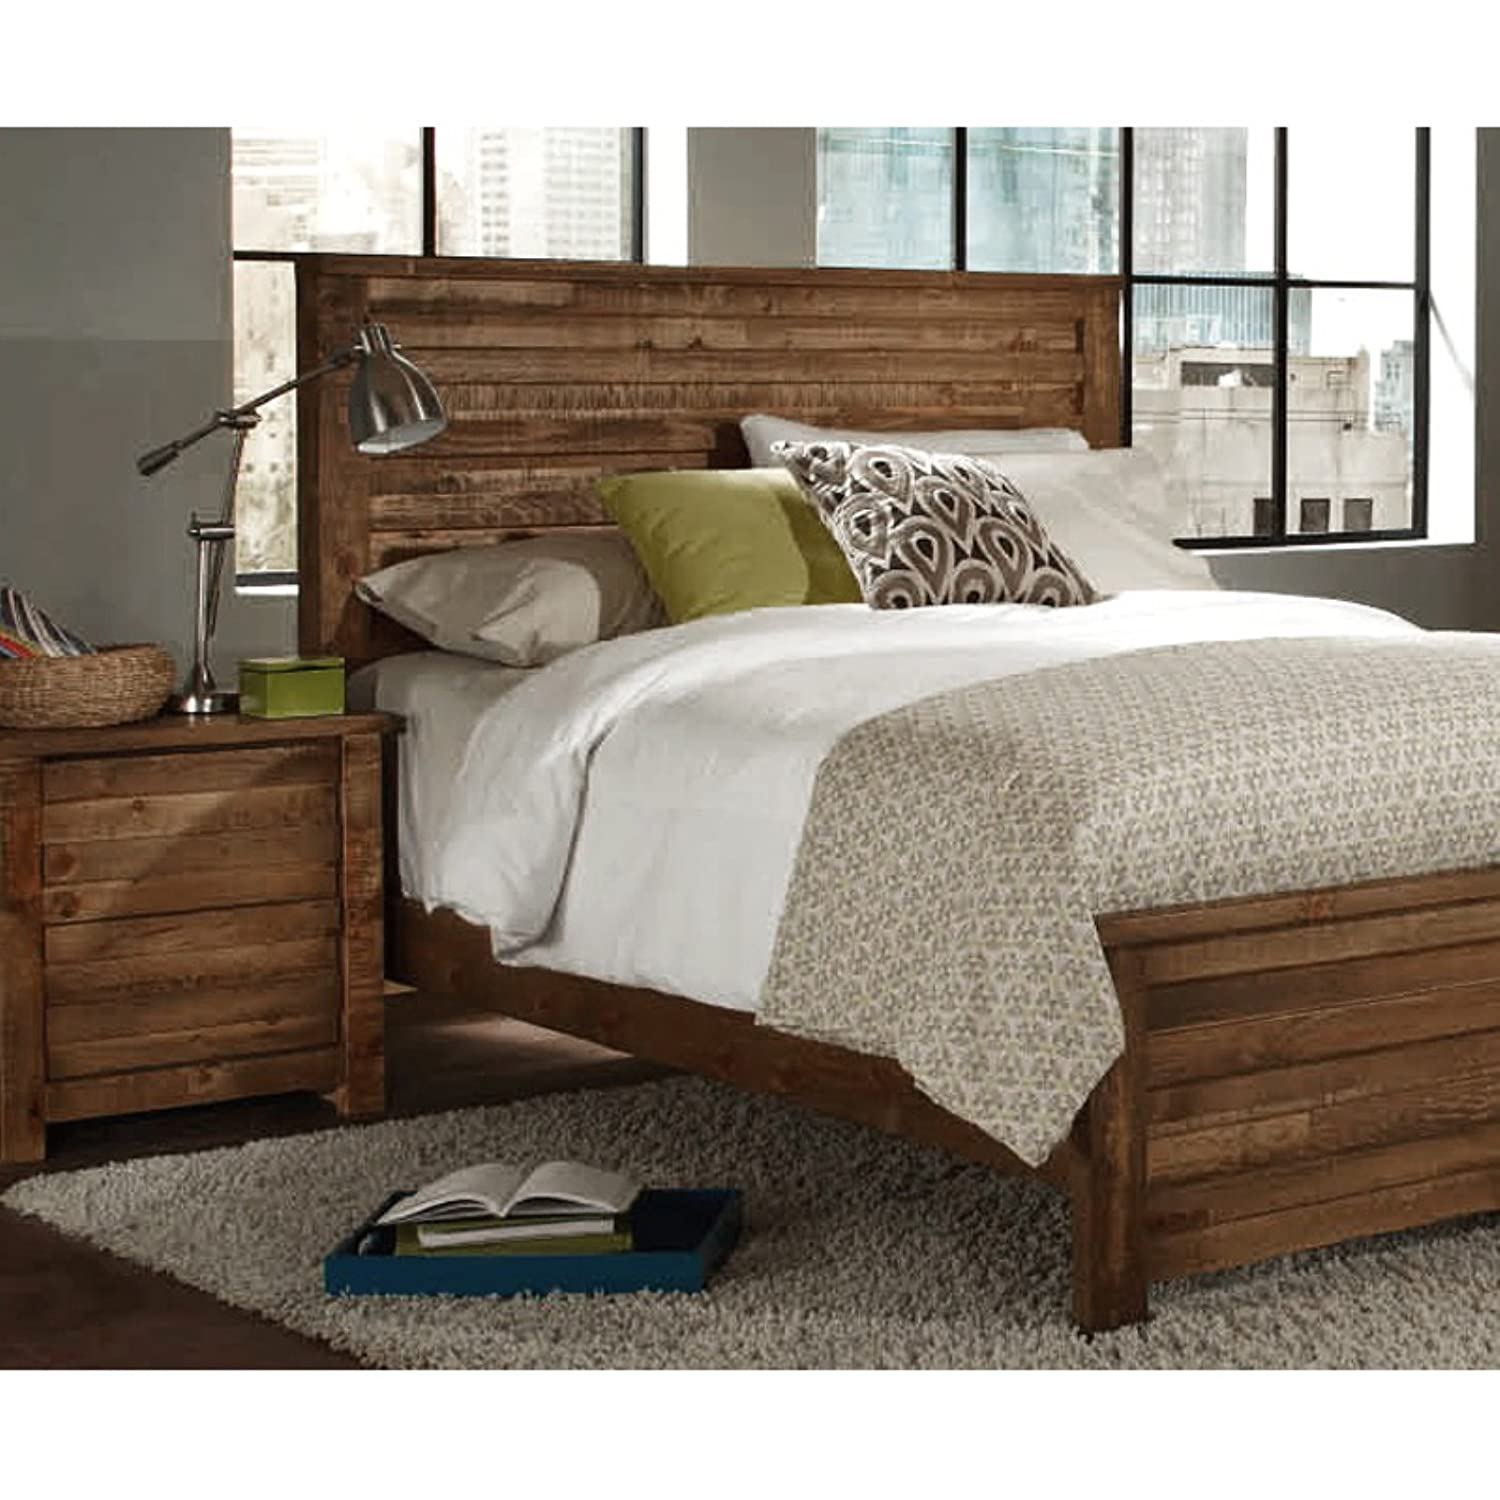 queen to plan easy pine make king headboard for headboards plans bed cheap basic